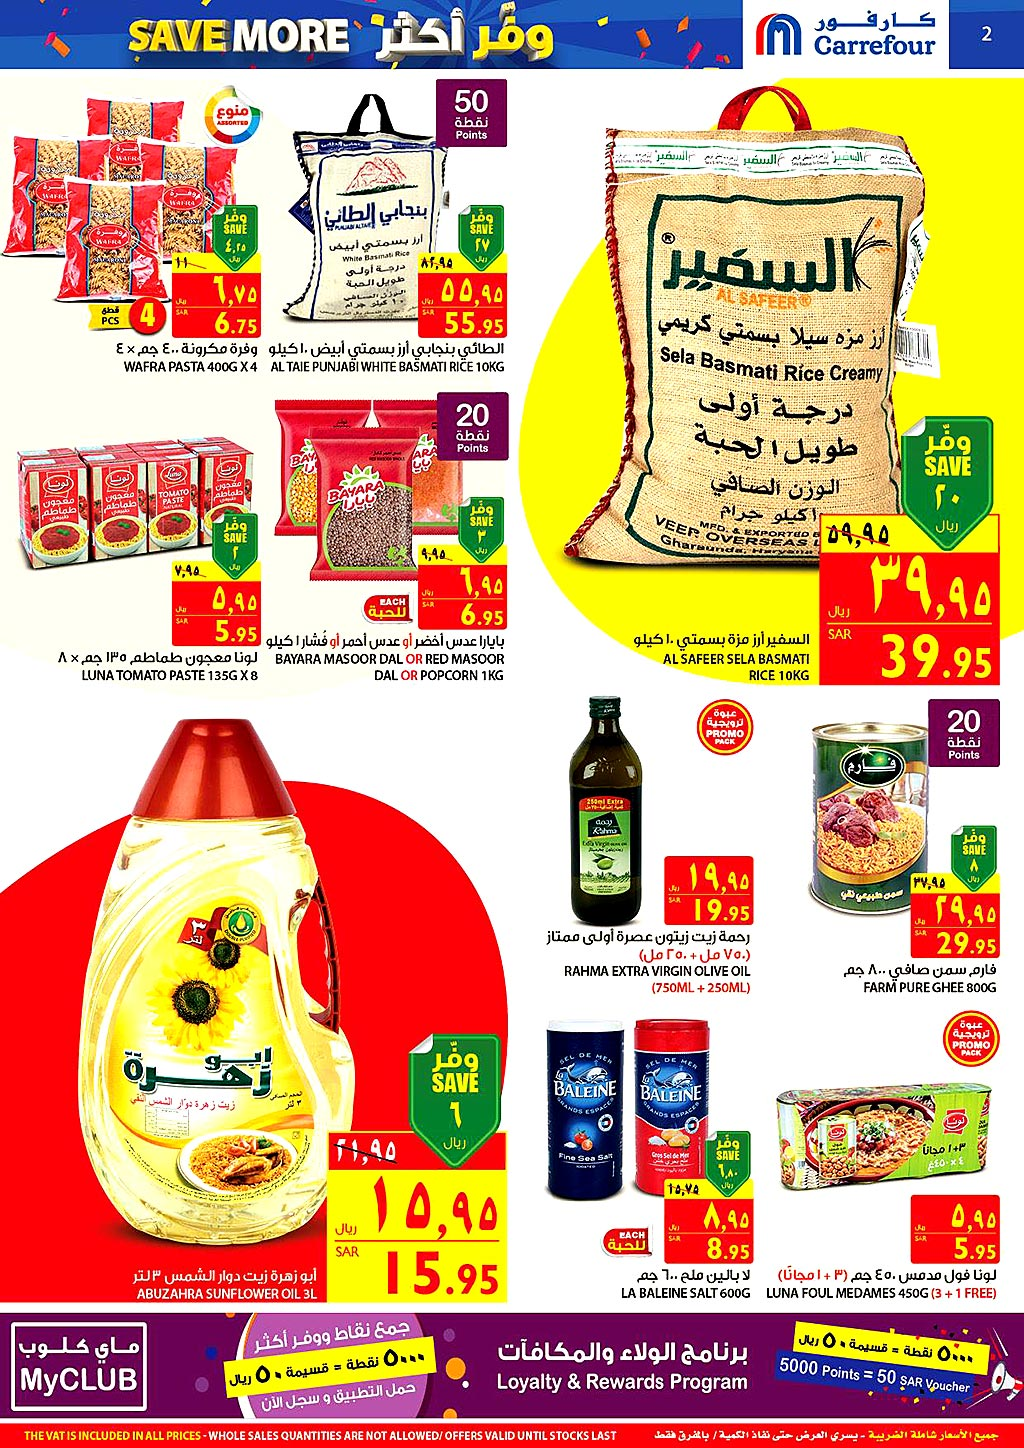 76f86d814 carrefour offers from 20feb to 26feb 2019 page number 2 عروض كارفور-السعودية  من 20